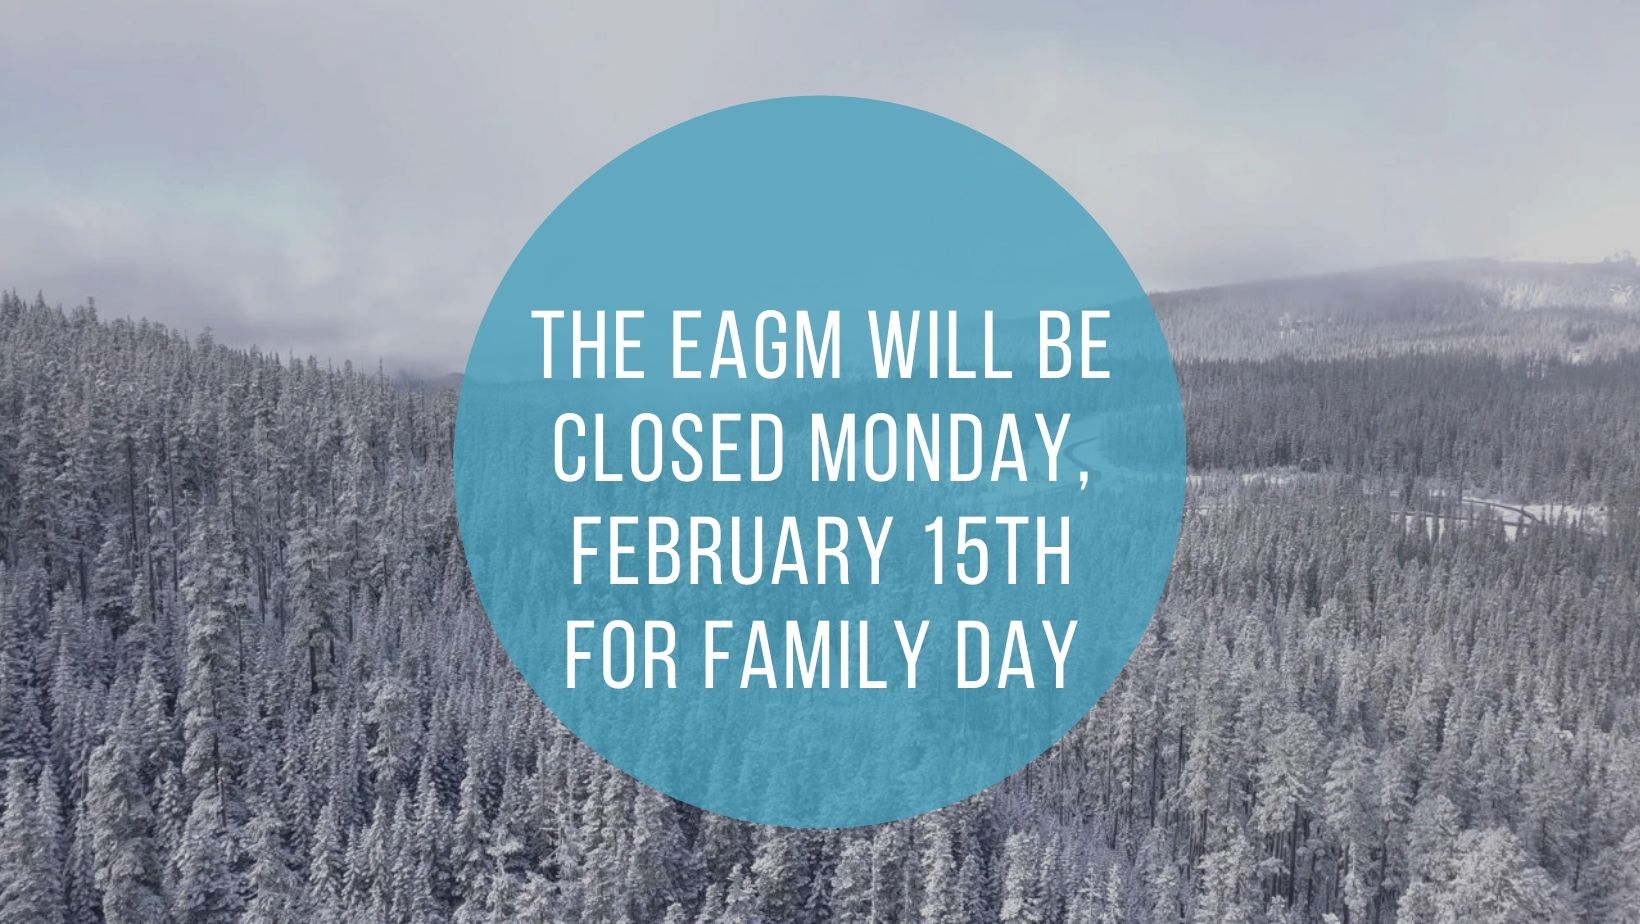 Copy of The EAGM will be closed Monday,